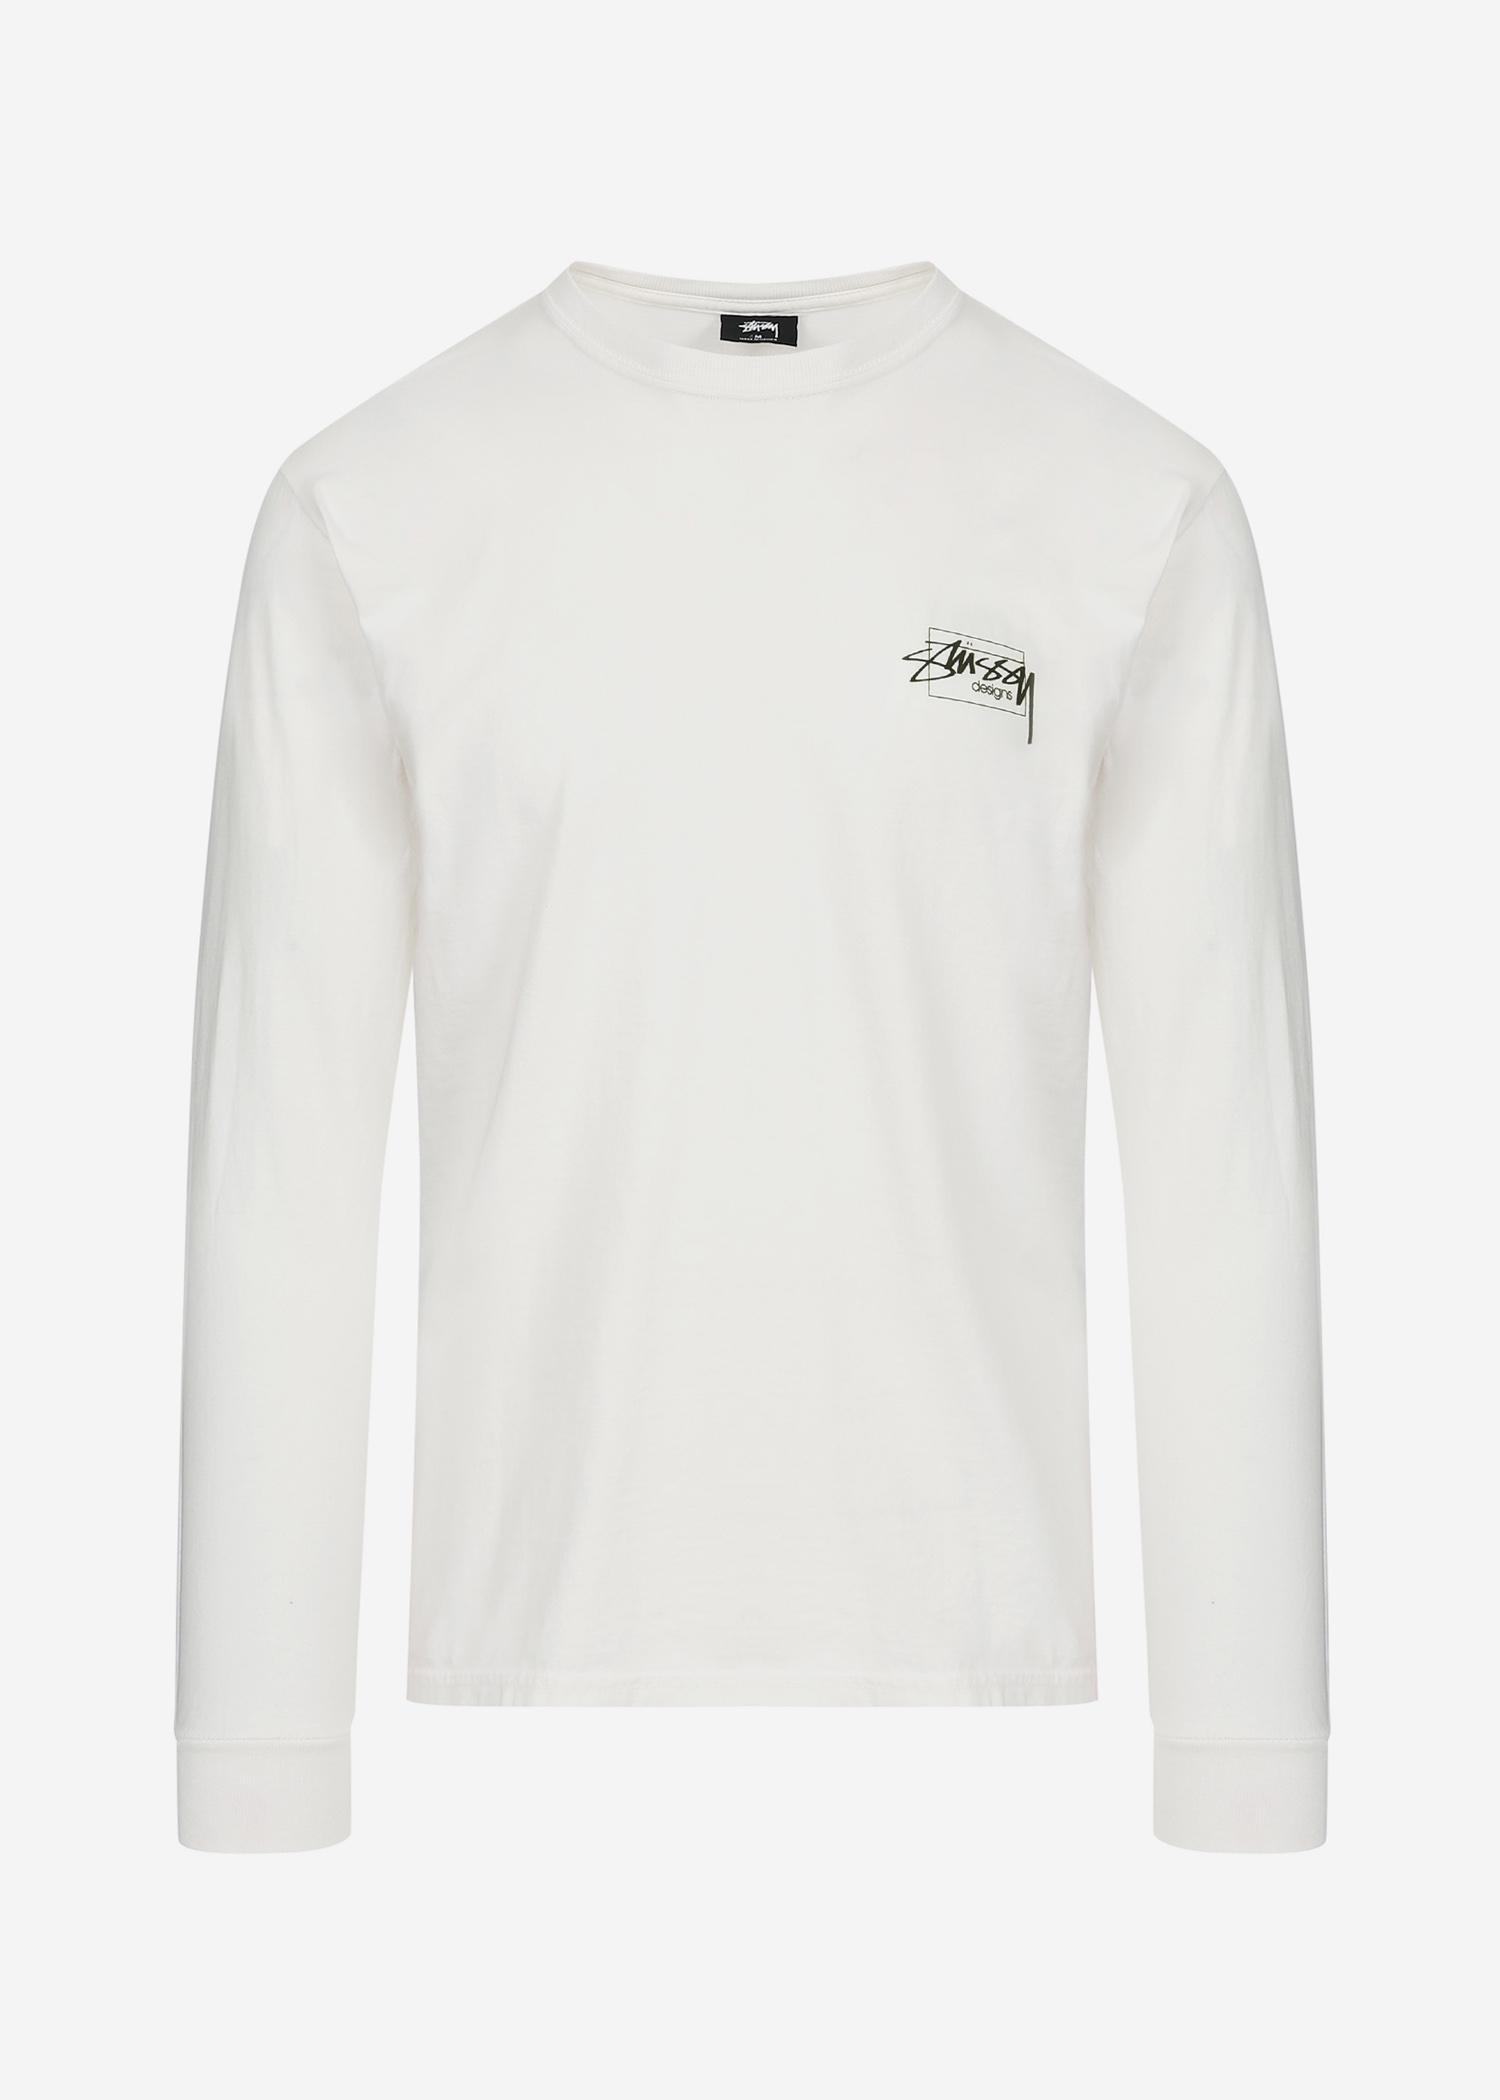 767dce000a Lyst - Stussy Modern Age Pig. Dyed L/s T-shirt in Natural for Men